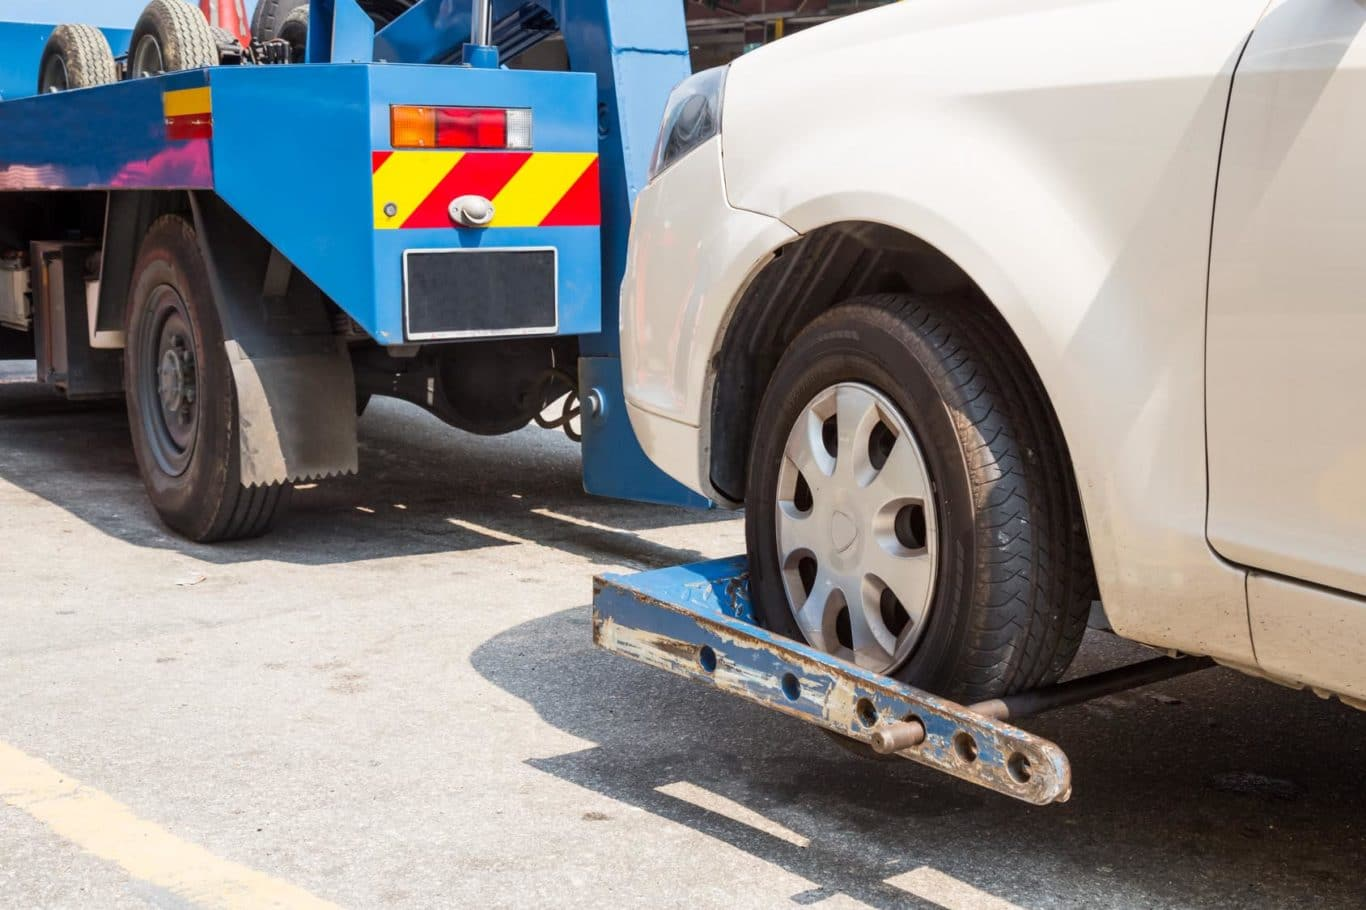 Dublin 22 (D22) South Dublin expert Roadside Assistance services